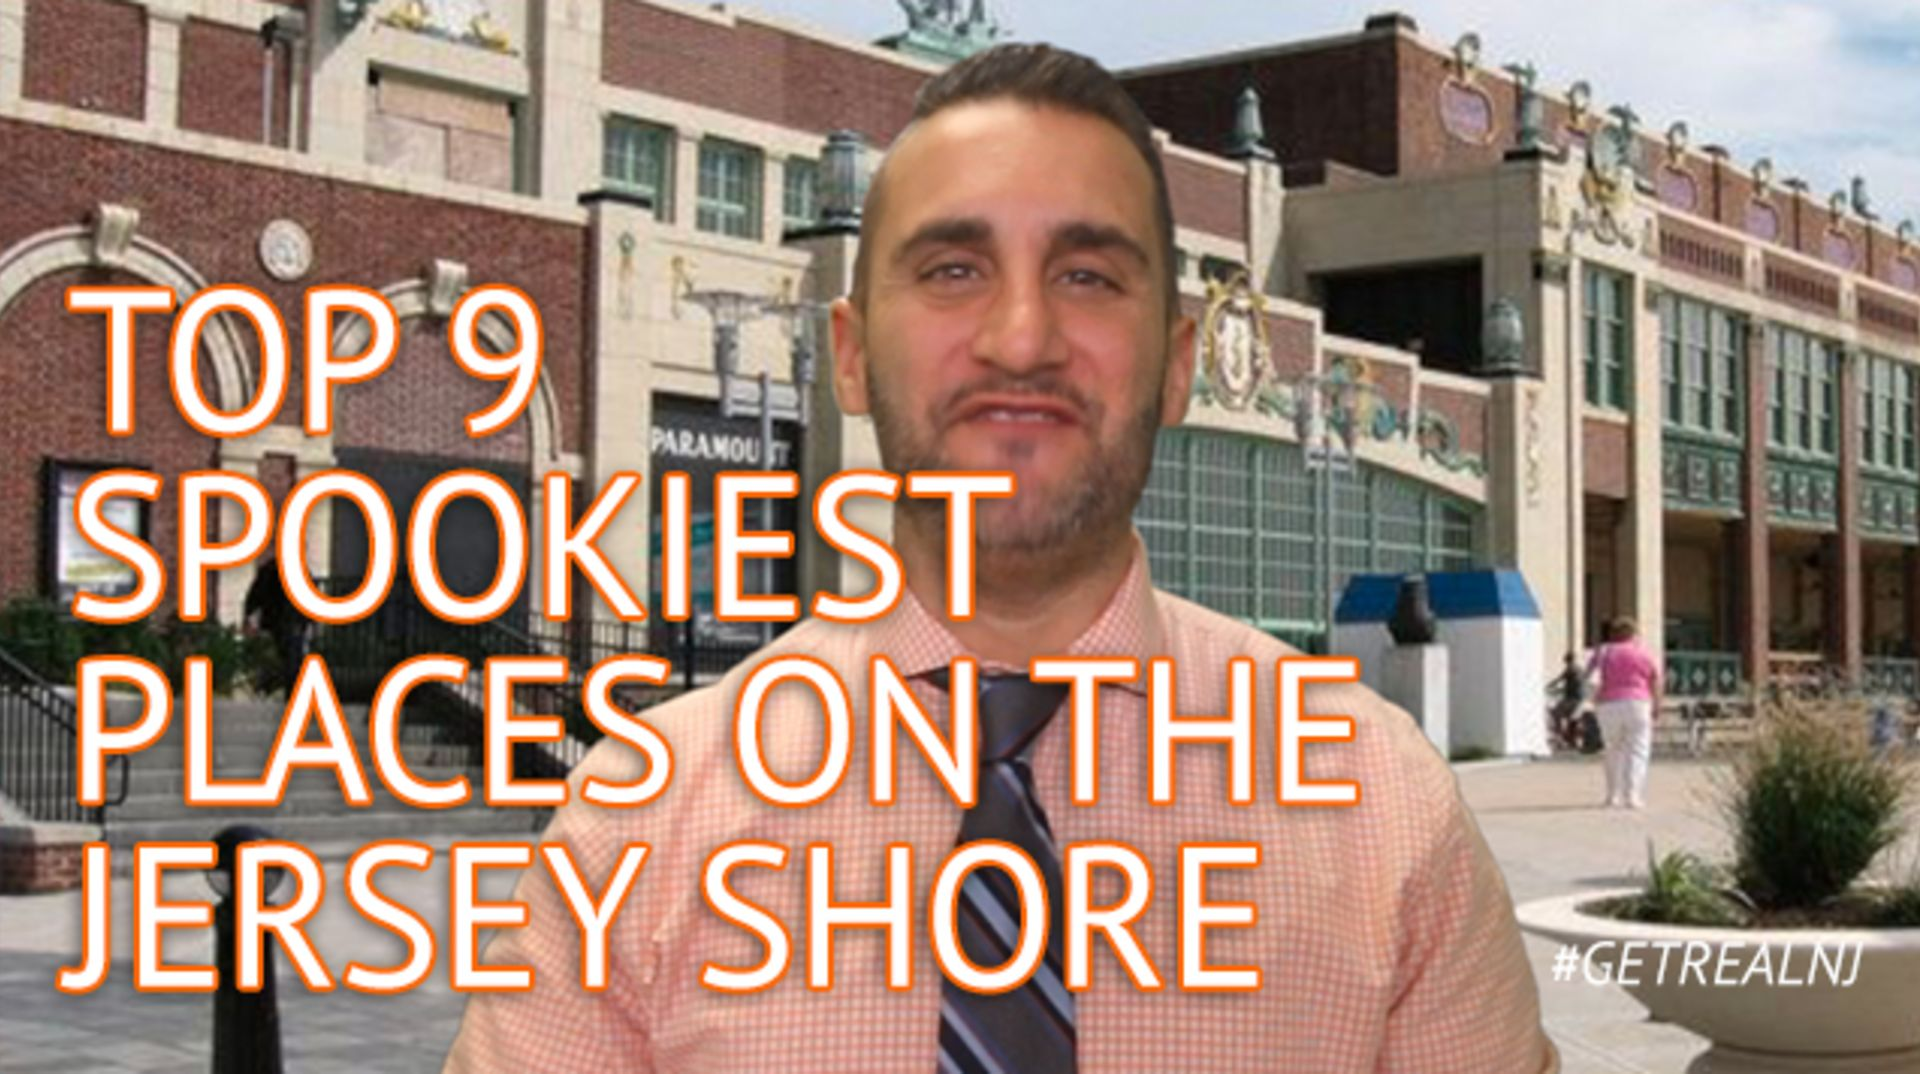 Top Spookiest Places to Visit on the Jersey Shore